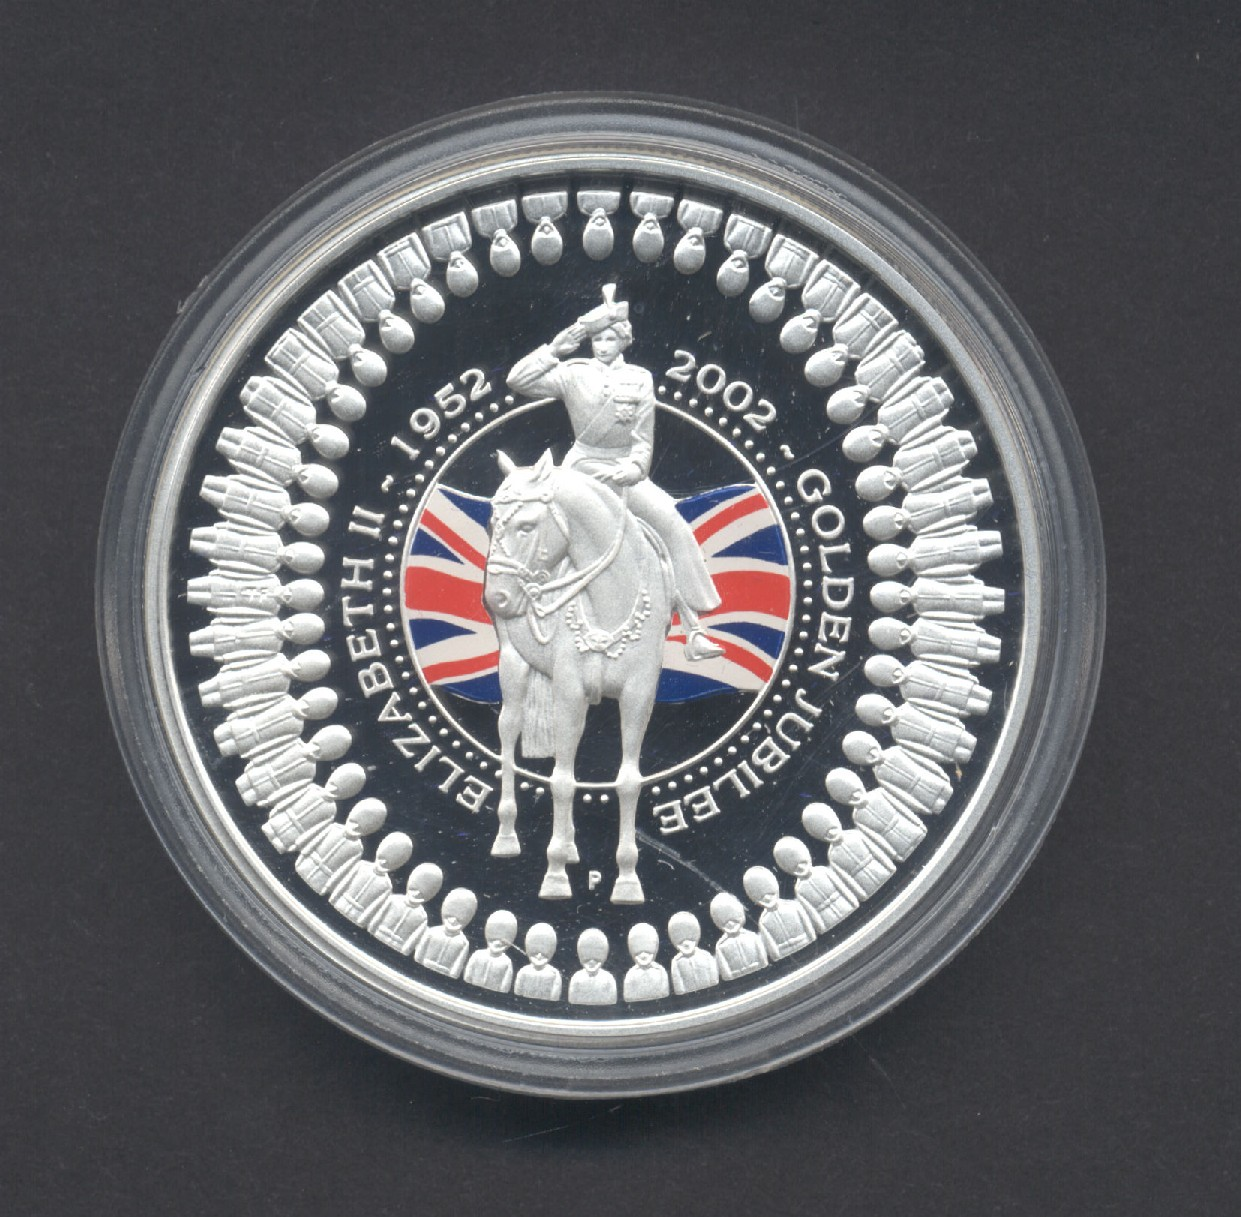 Thumbnail for 2002 Golden Jubilee 1oz Coloured Silver Proof Coin